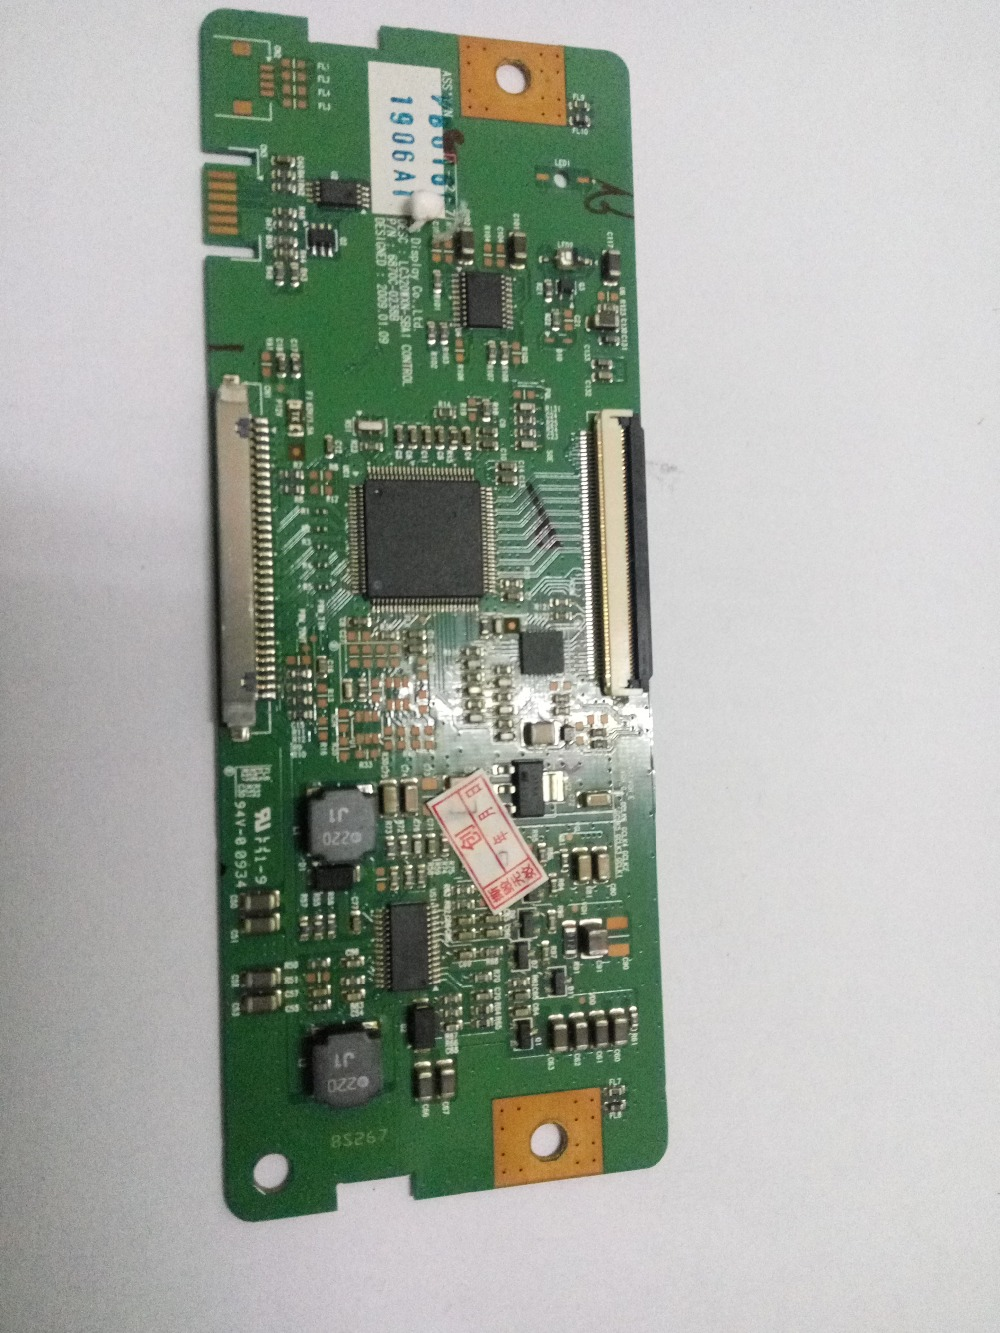 32m11hm Logic Board 6870c-0238b  6870c-0238A / Lc320wxn Connect With T-CON Connect Board